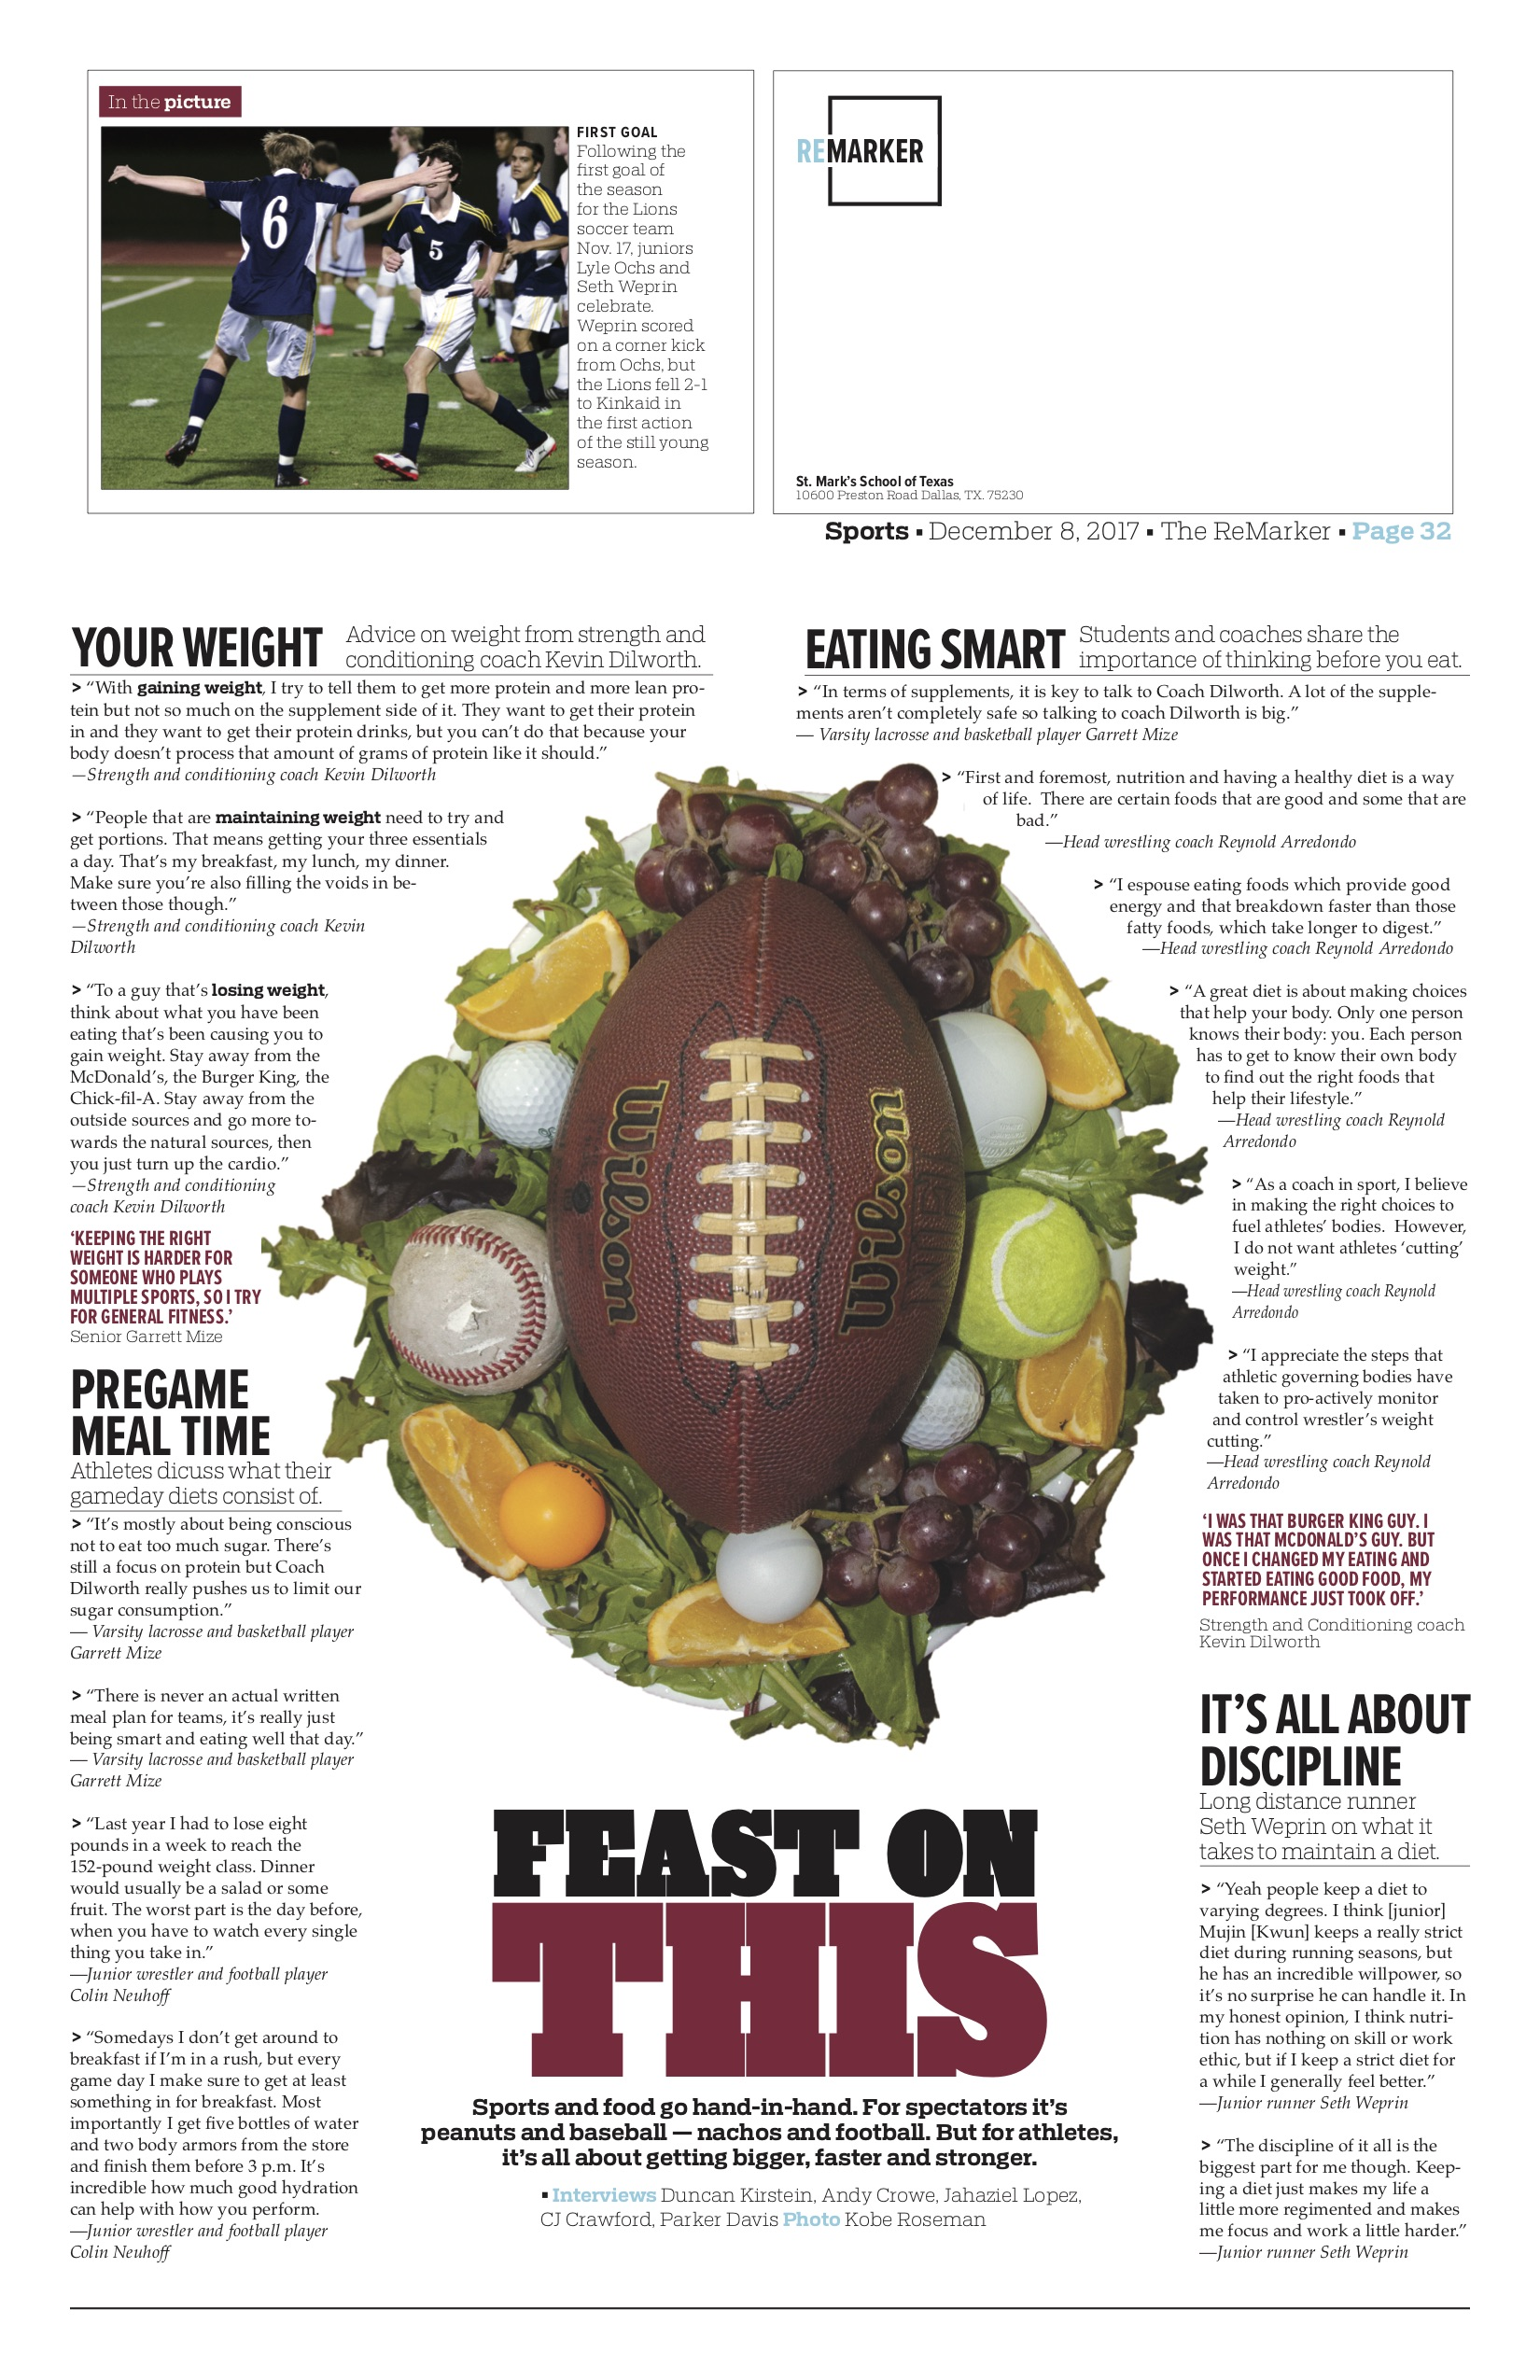 Embracing the design freedom of our back page, for this story on sports nutrition, I used a photo illustration and an alternate copy style to tie everything together in a reader-friendly way.